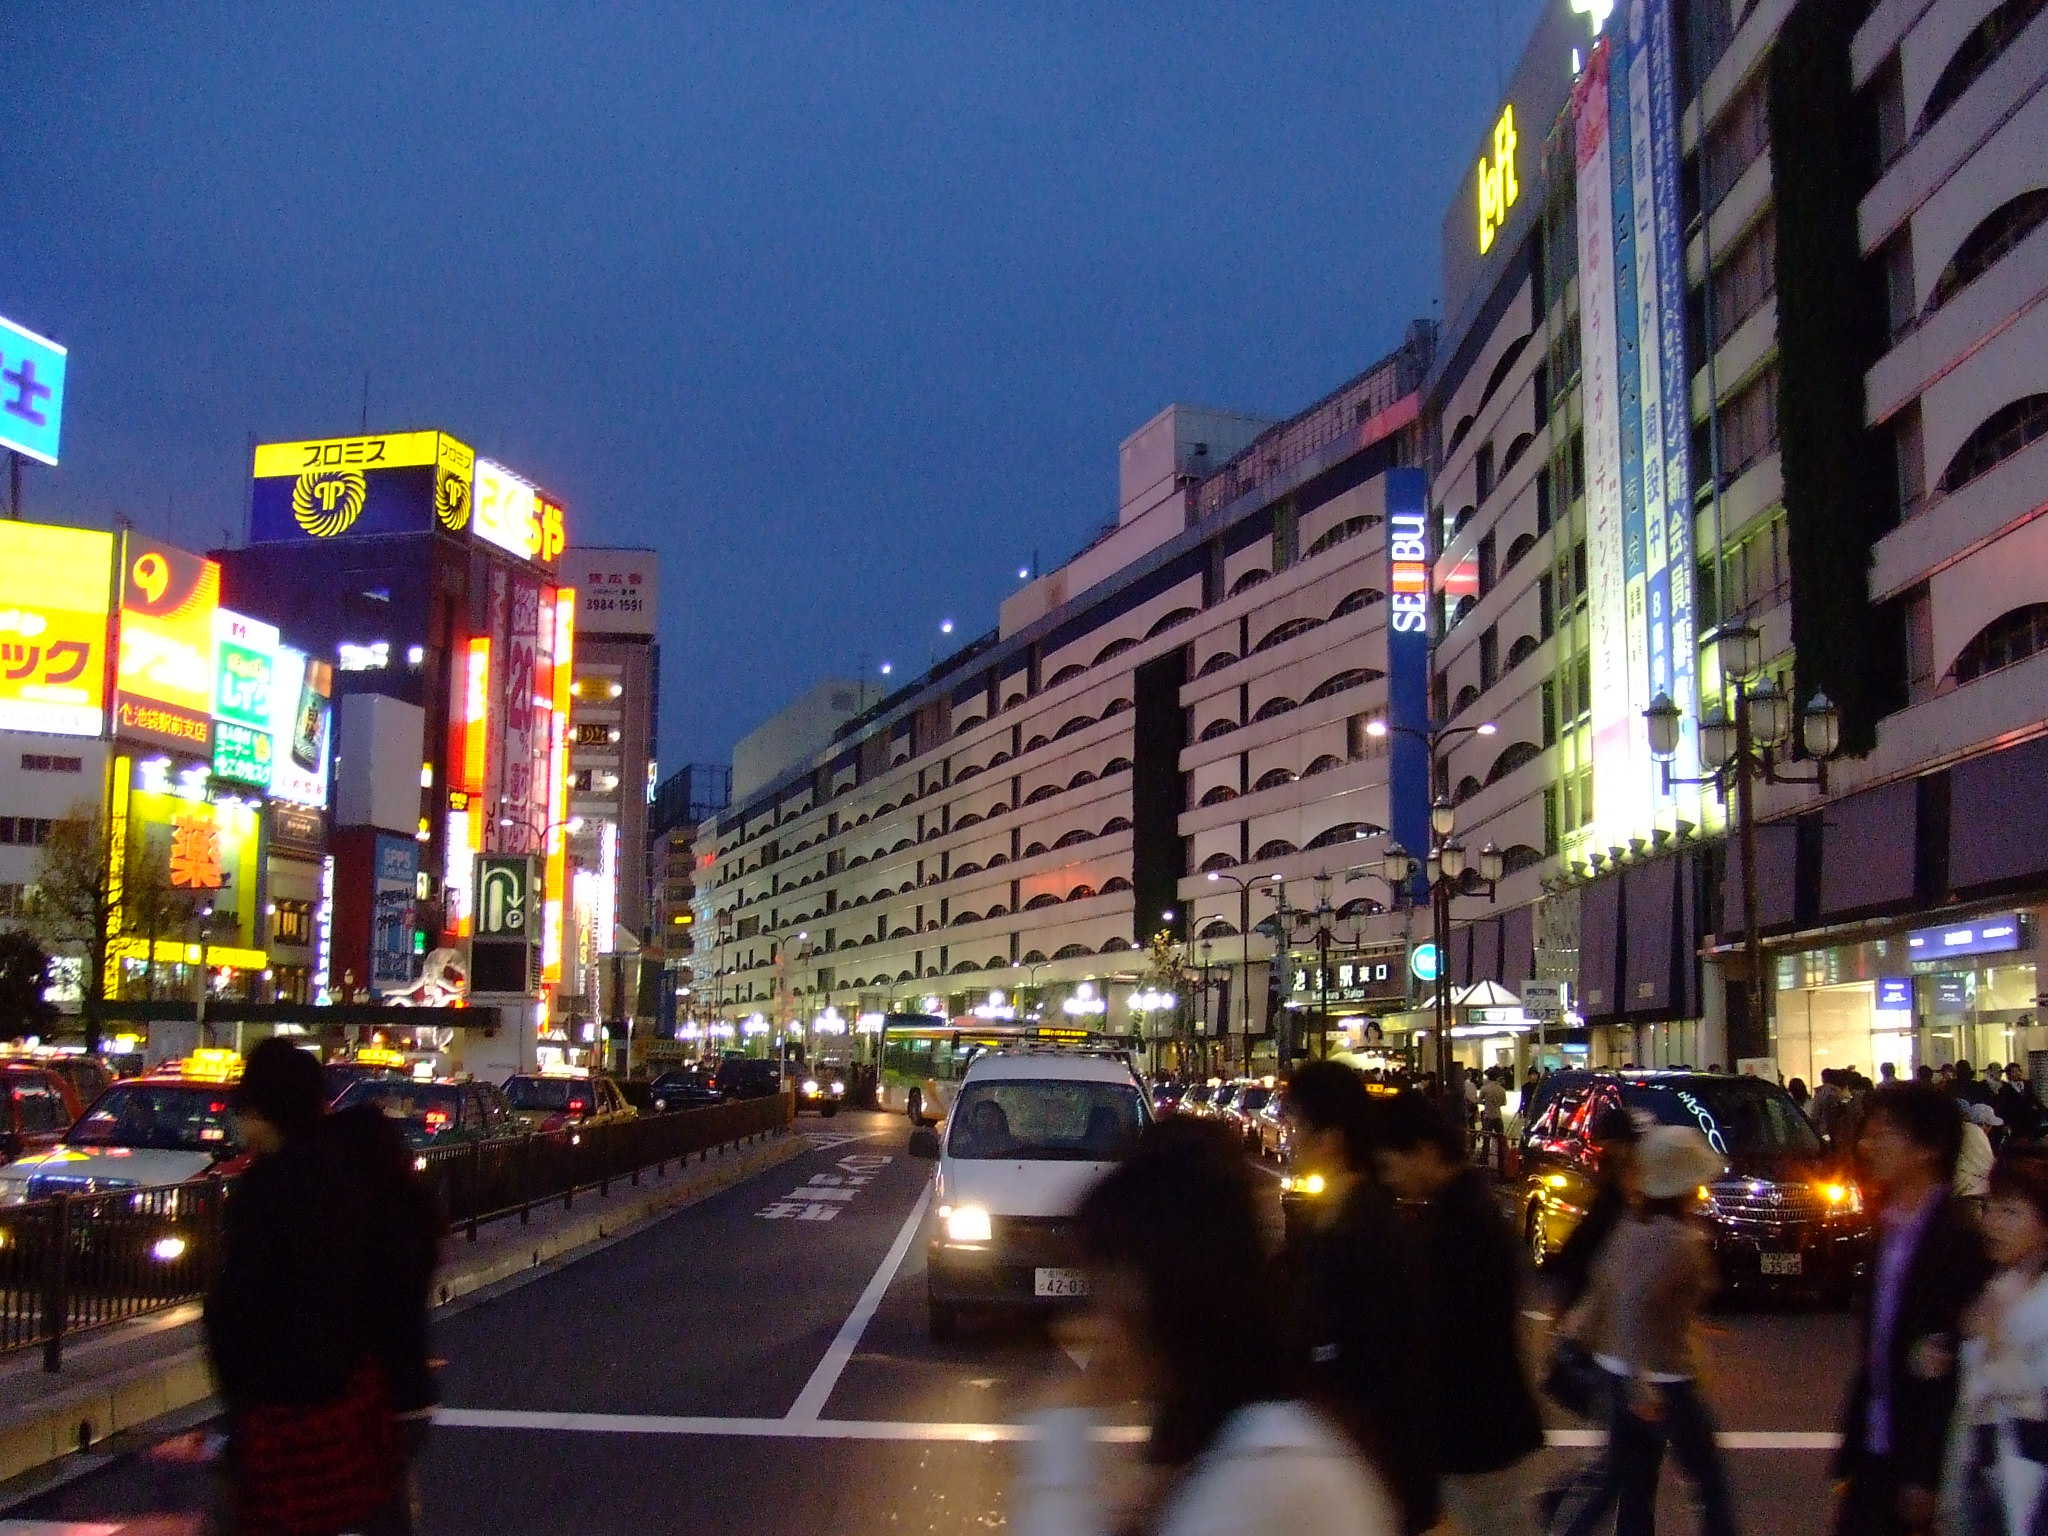 """Ikebukuro Station"" by Ray Tsang from Irvine, USA - Flickr. Licensed under CC BY-SA 2.0 via Wikimedia Commons - https://commons.wikimedia.org/wiki/File:Ikebukuro_Station.jpg#/media/File:Ikebukuro_Station.jpg"